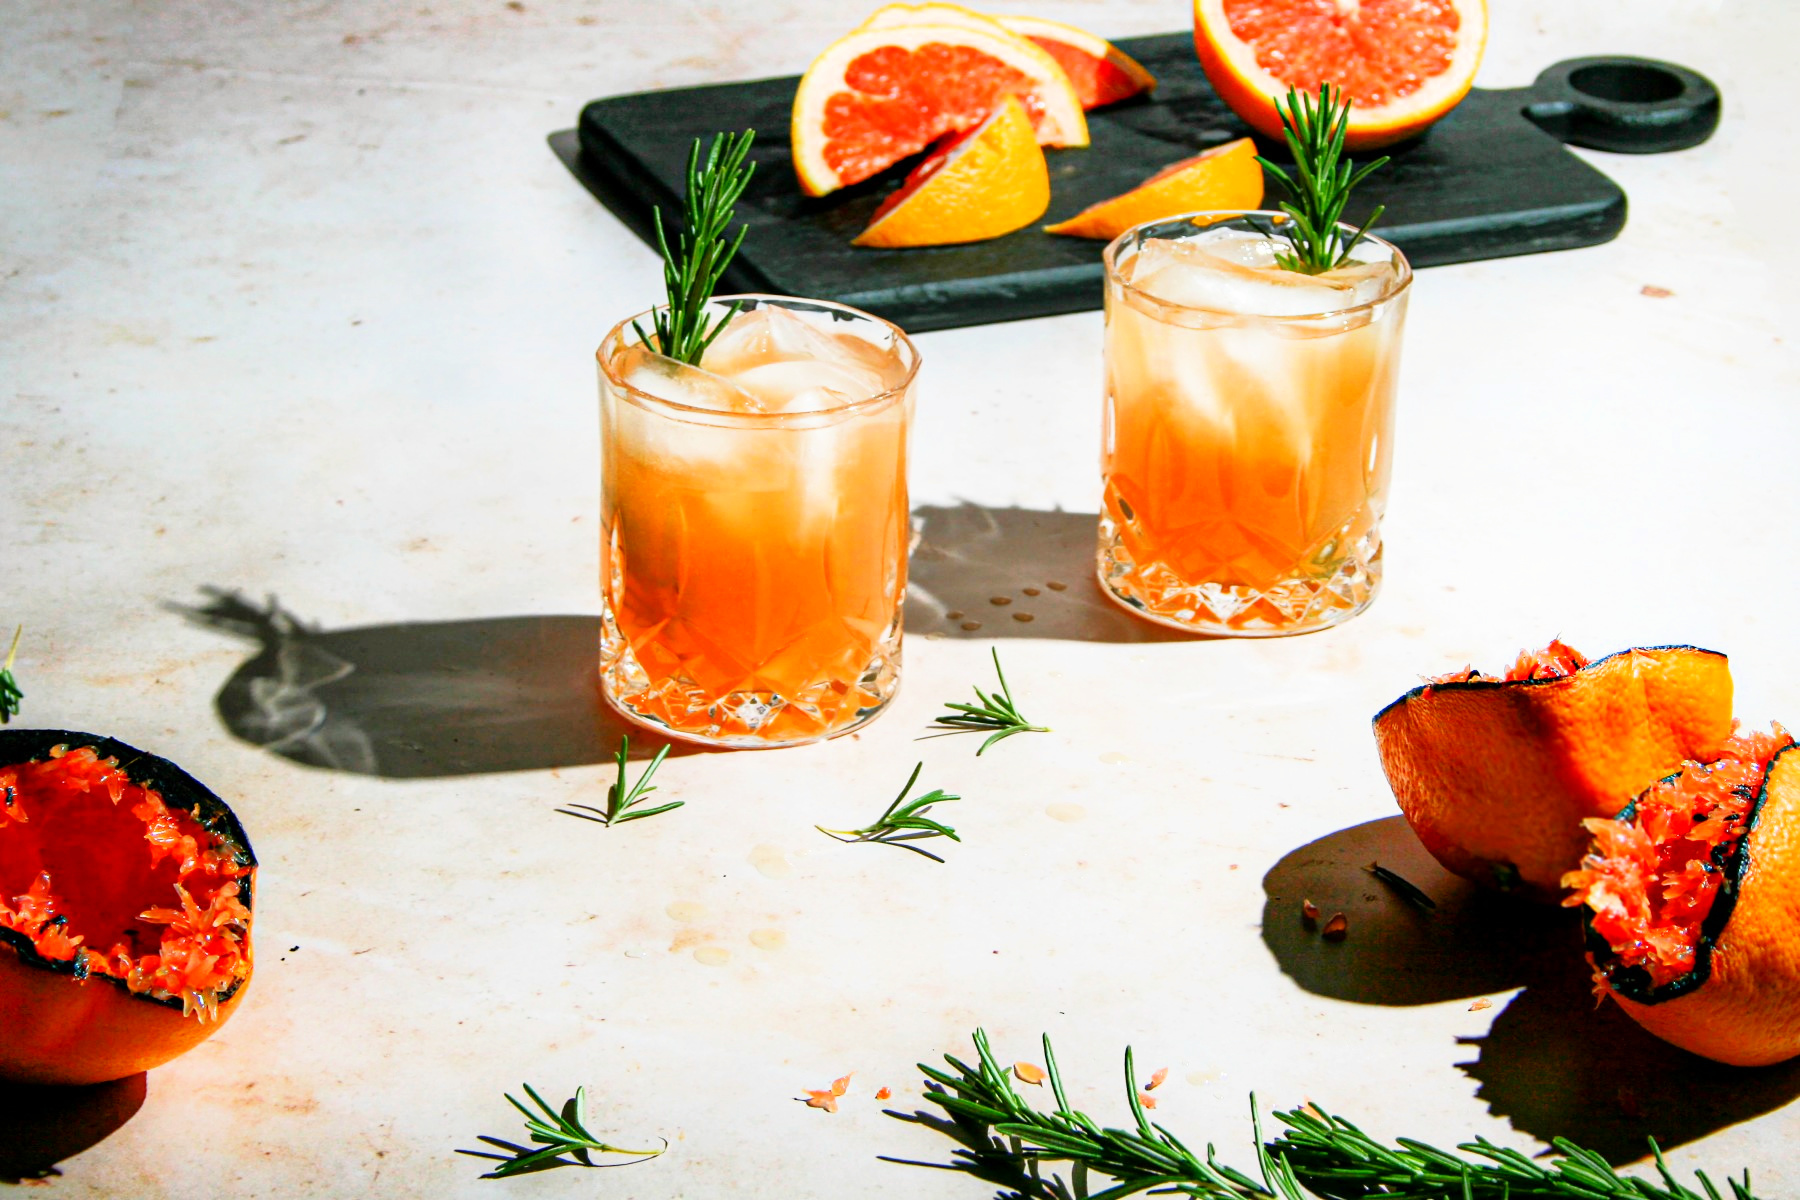 2 old fashion glasses filled with grilled grapefruit greyhounds over ice with rosemary sprigs and grilled grapefruit halves and fresh smiles in the background